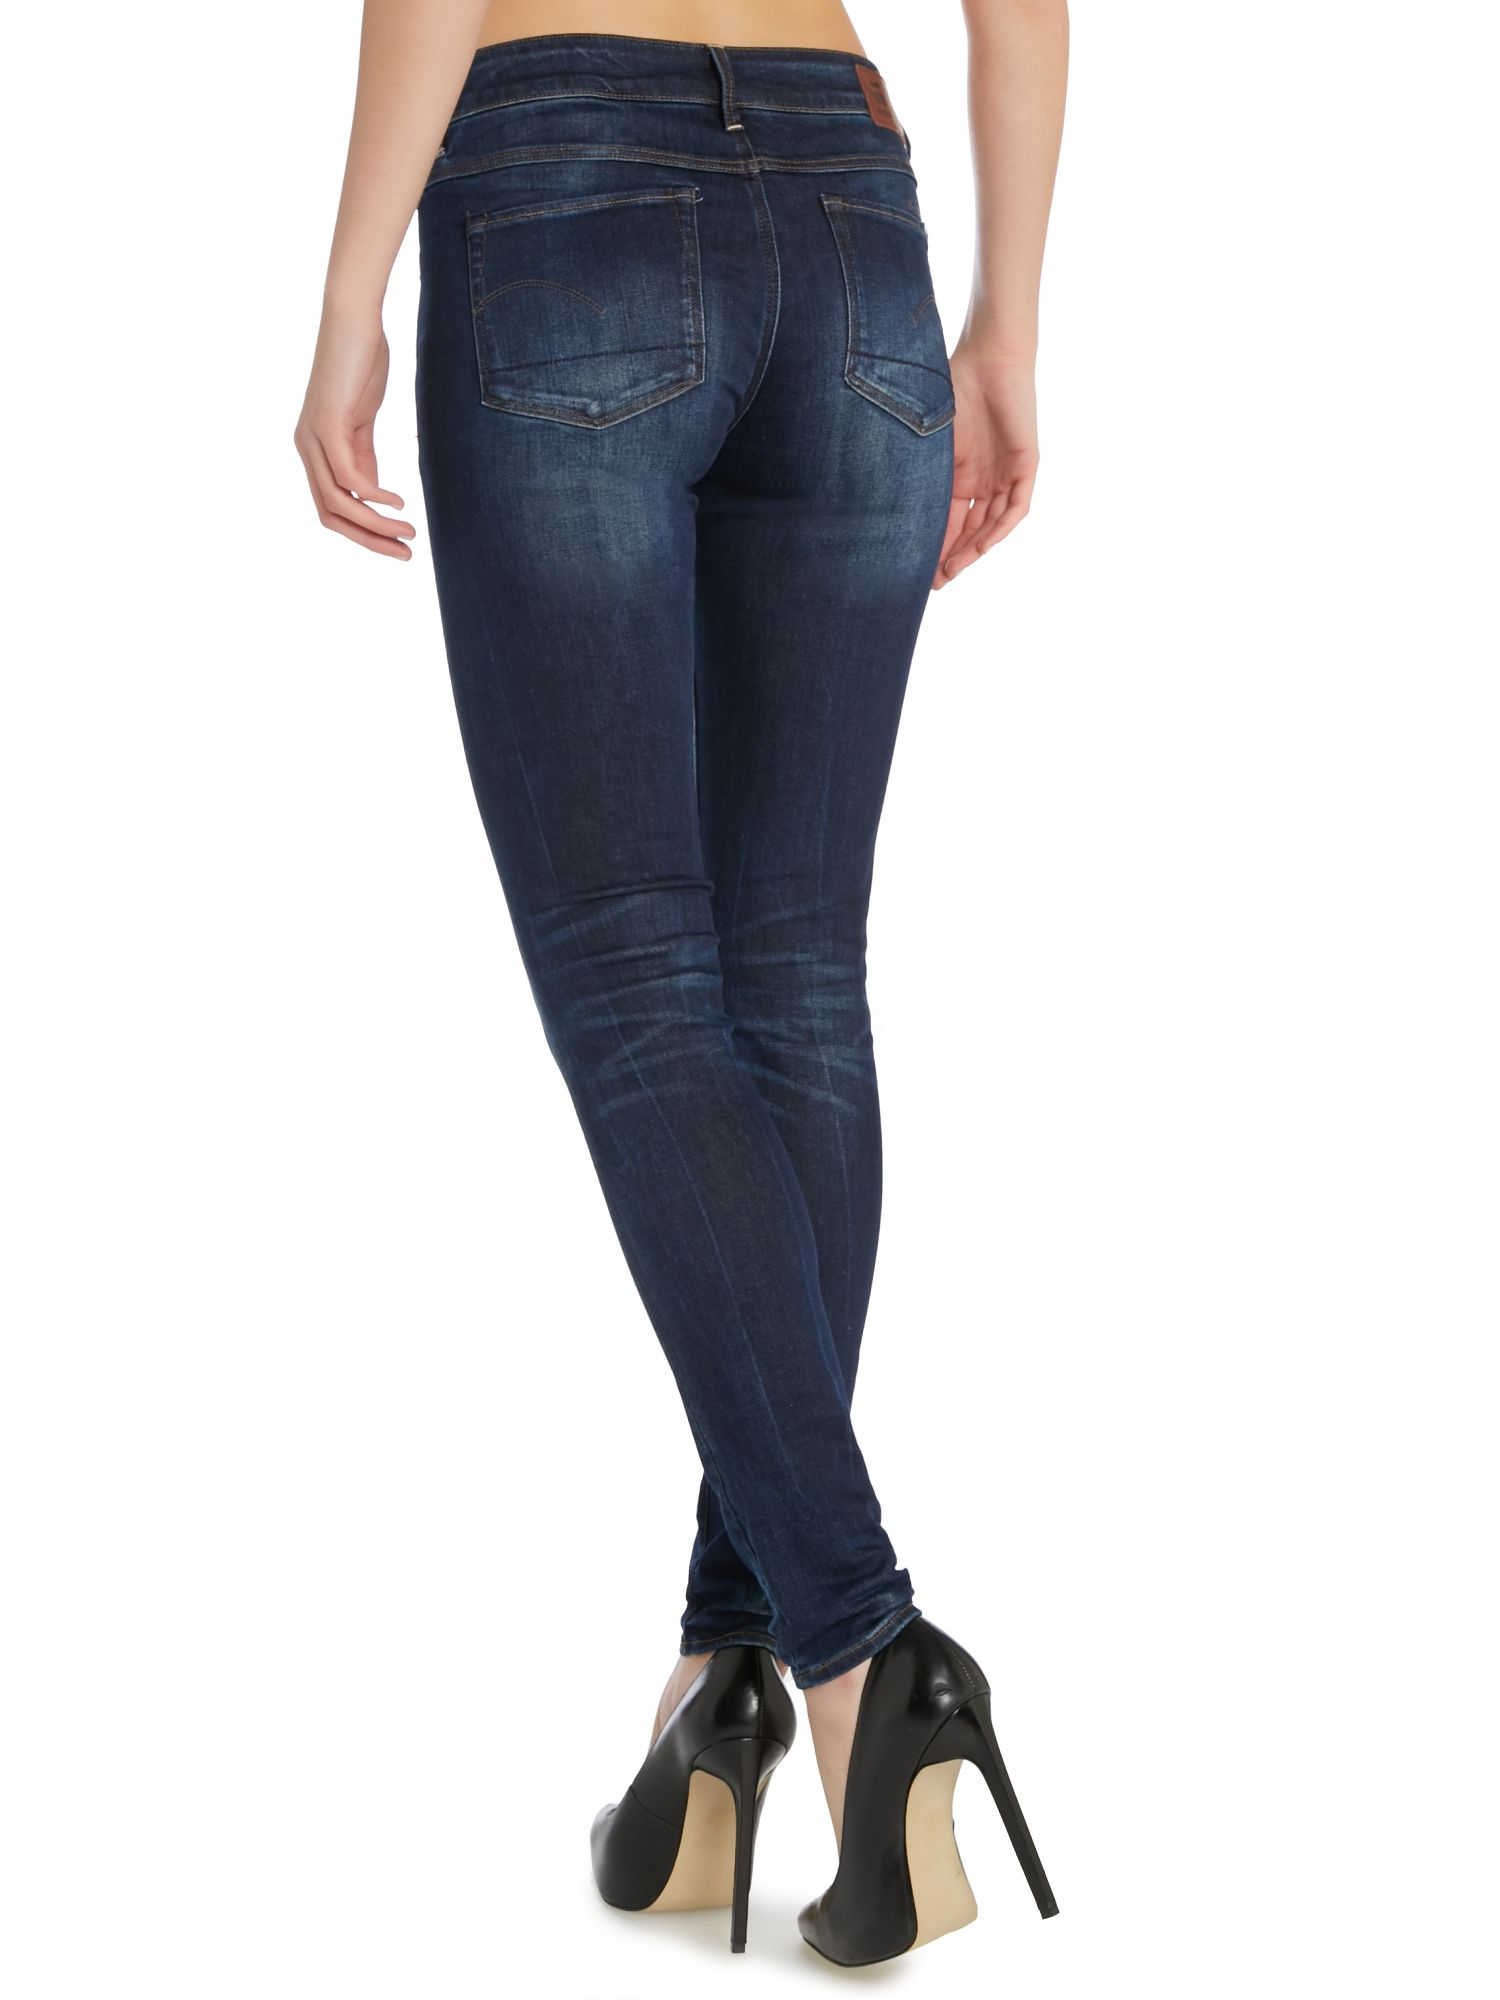 G-Star Womens 3301 Jegging Skinny Jeans G-Star Real Newest Online Manchester Great Sale Cheap Price MY8ye